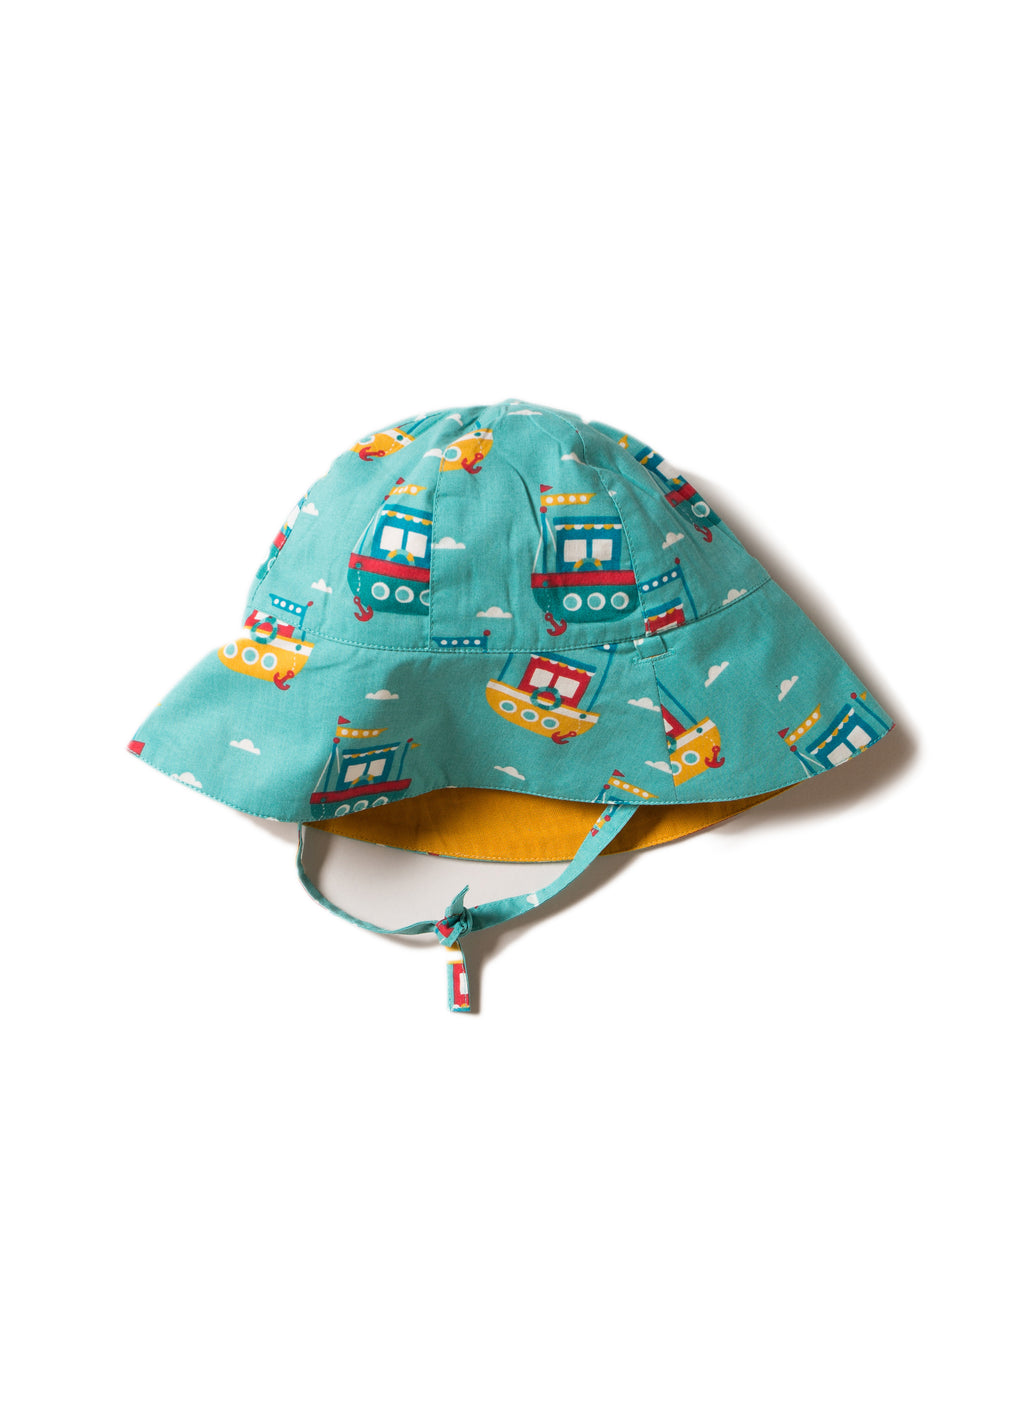 Lost at Sea Reversible Sun Hat